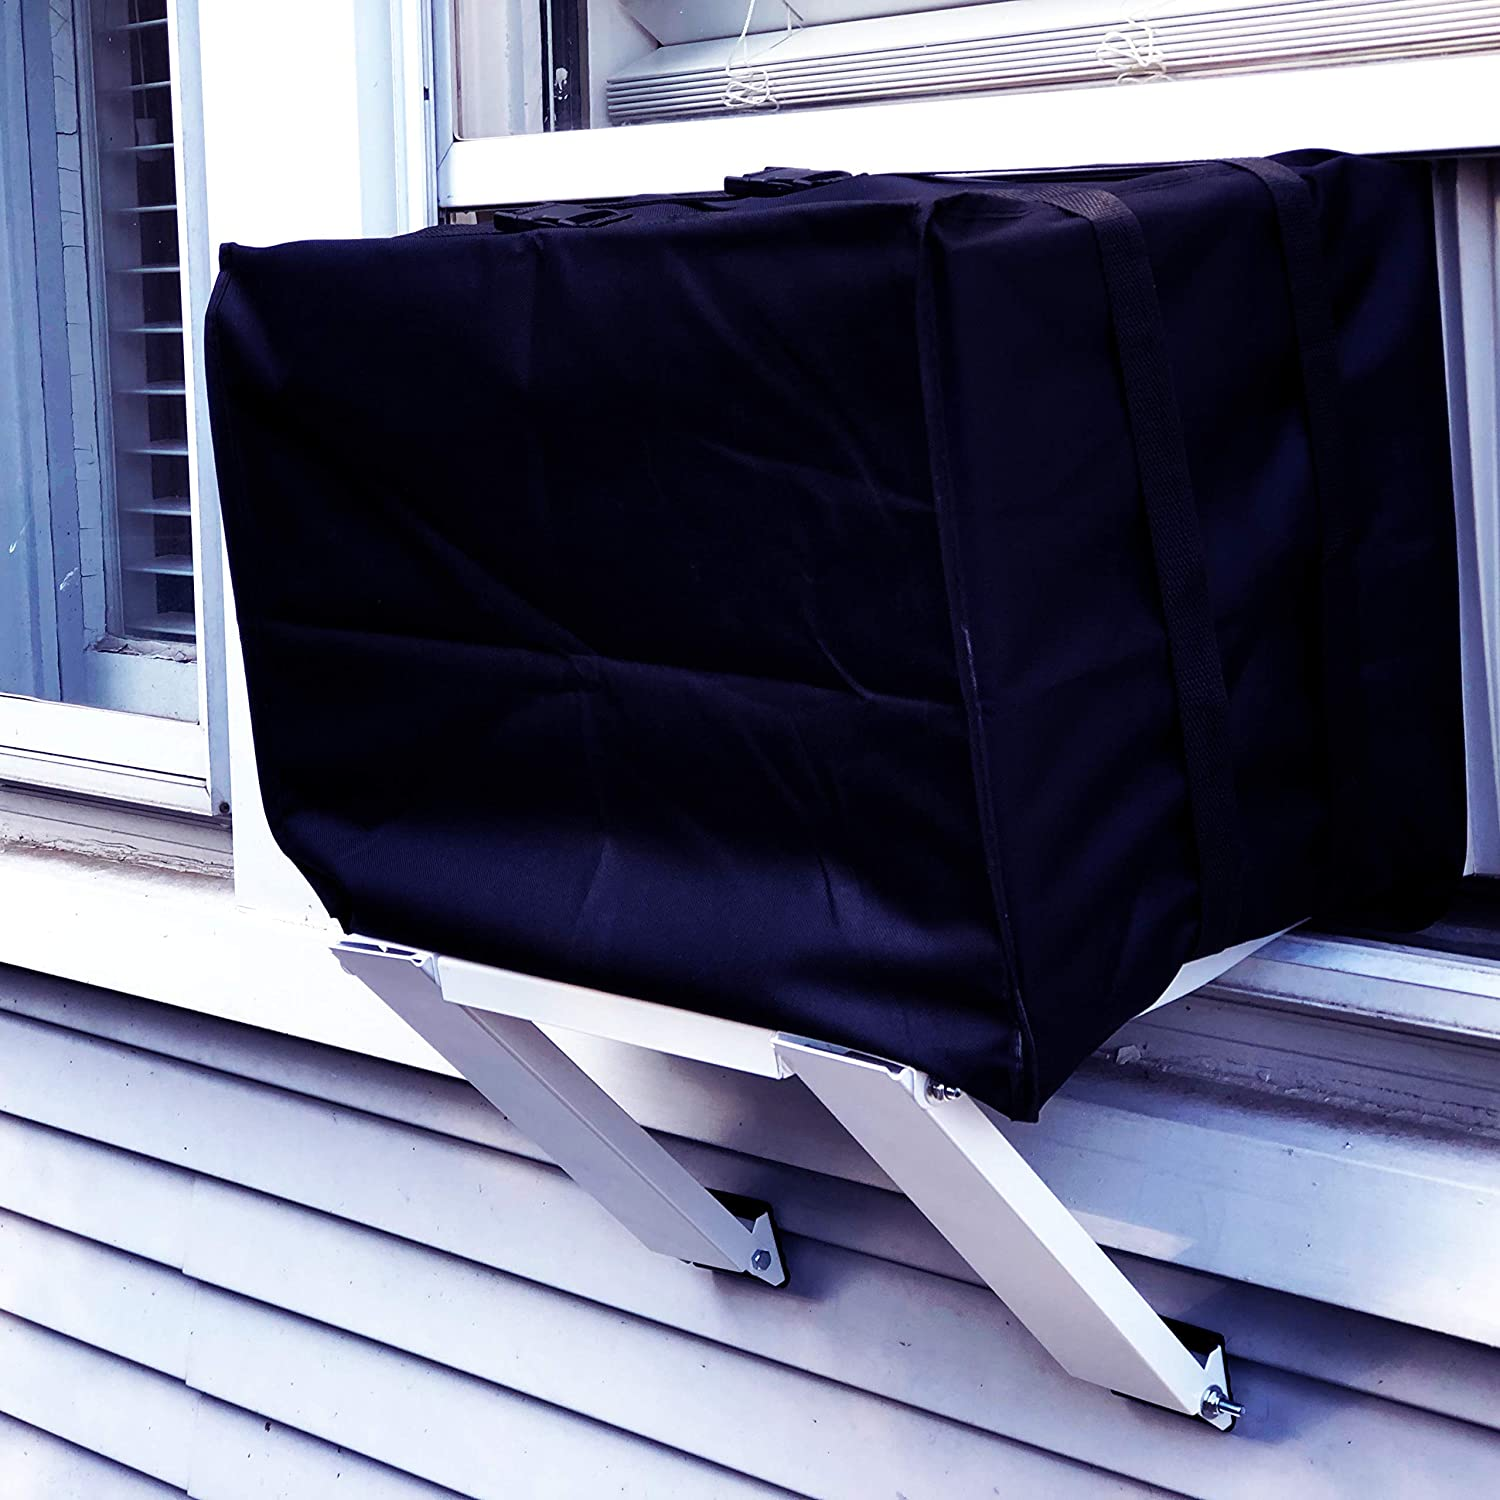 ALPINE HARDWARE Outdoor Window AC Covers Window Air Conditioner Protection Cover Black, 19 x 27 x 25